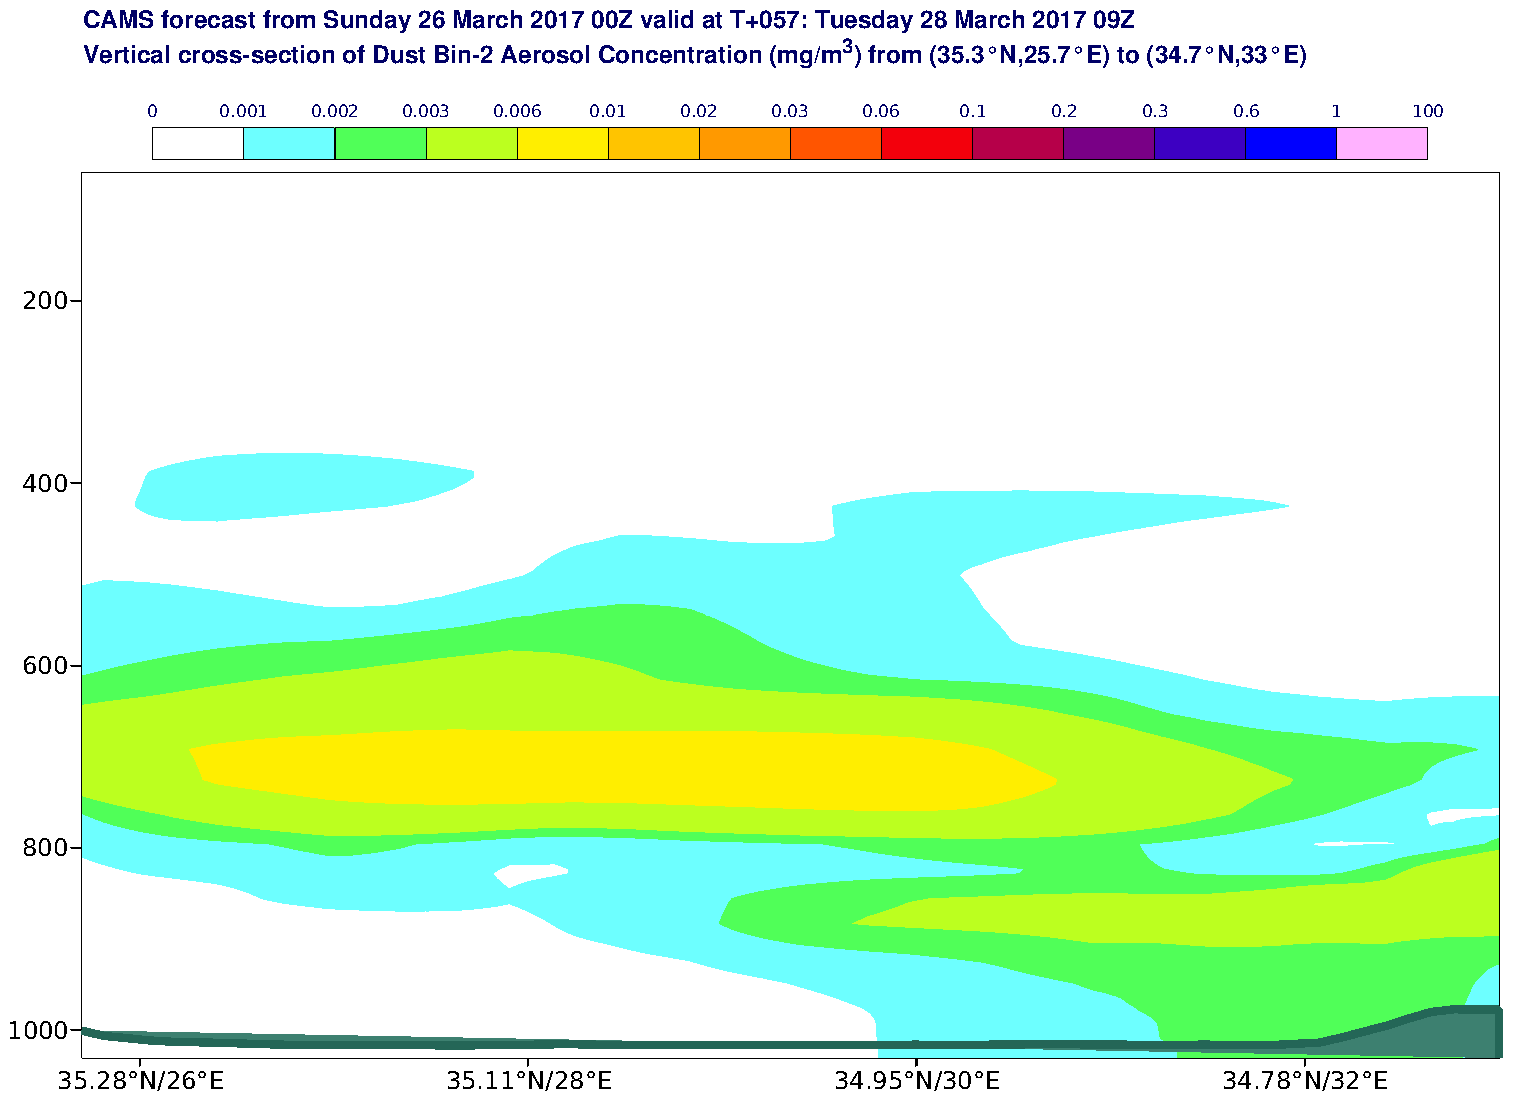 Vertical cross-section of Dust Bin-2 Aerosol Concentration (mg/m3) valid at T57 - 2017-03-28 09:00